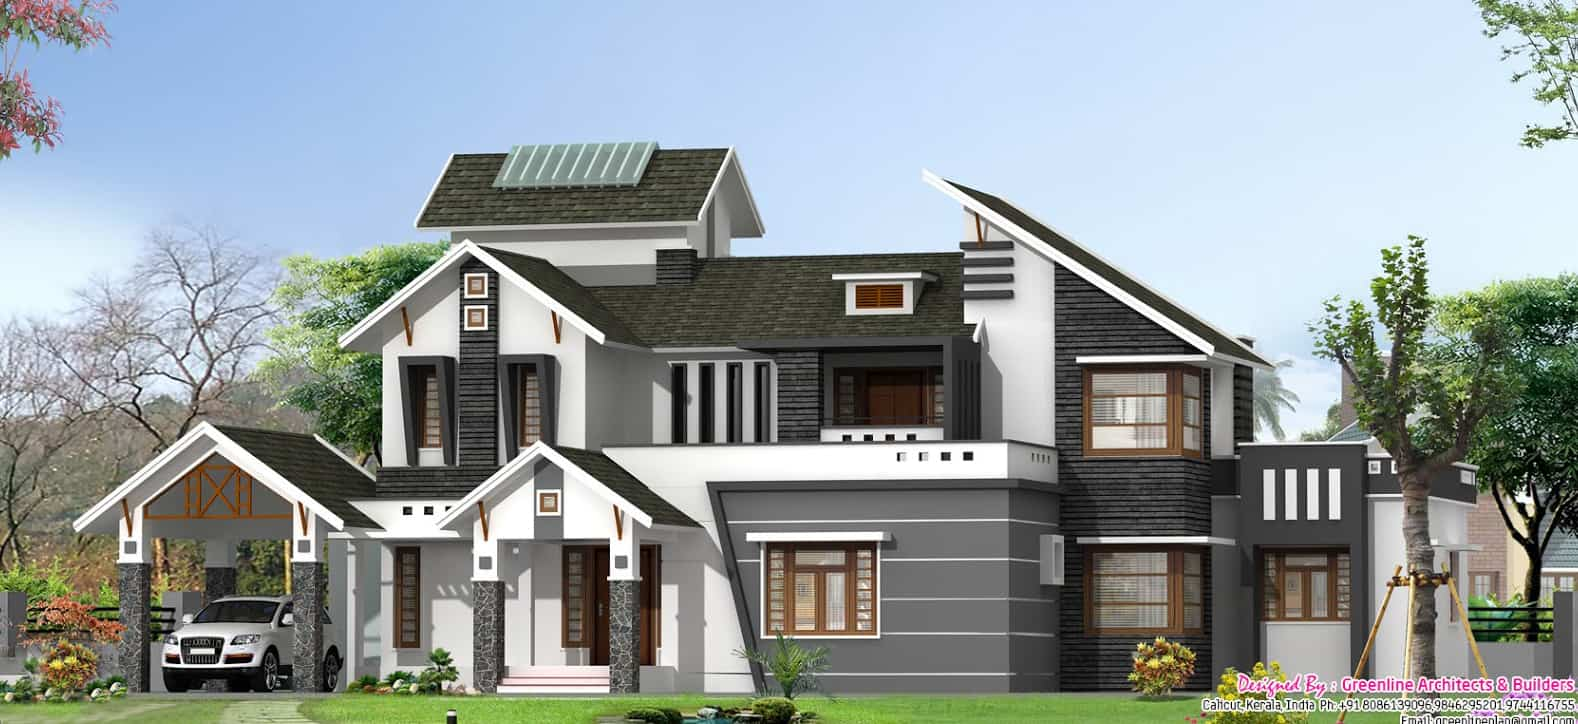 Unique house designs keralahouseplanner for Unusual home plans